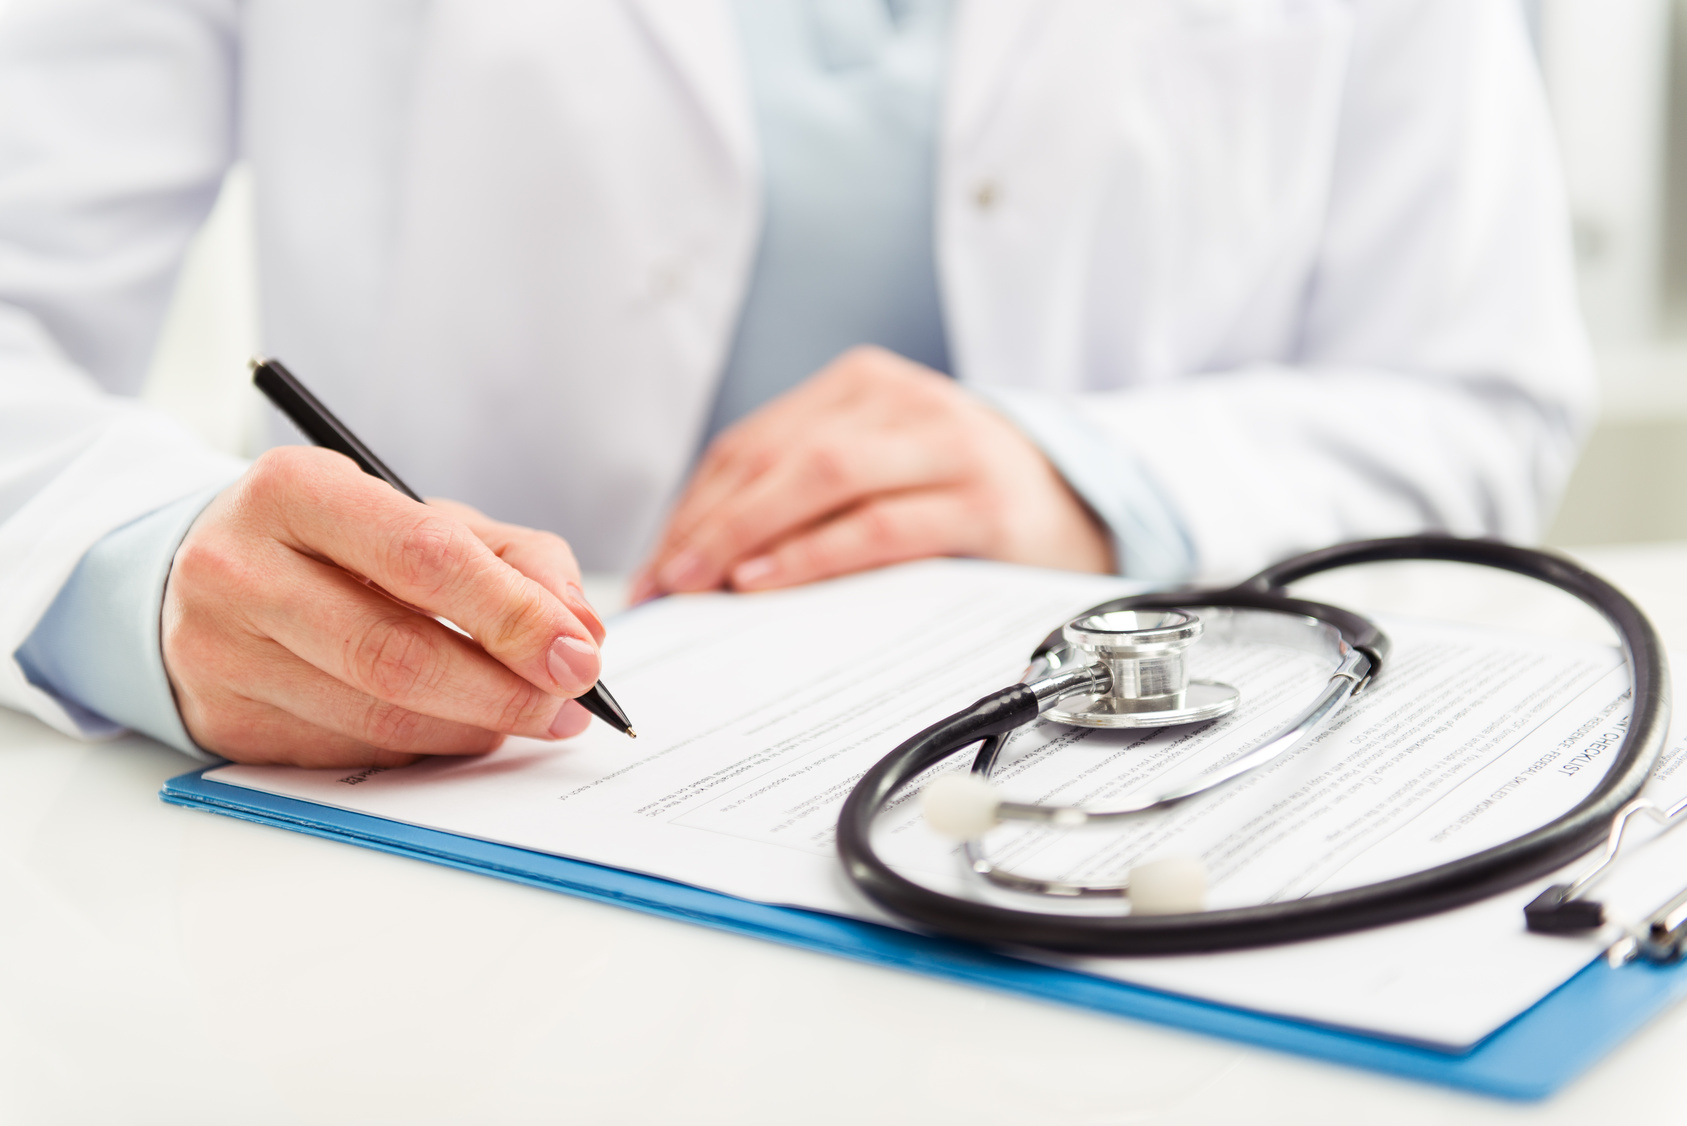 Patients Expect Doctors to Help Share Health Records with Other Providers